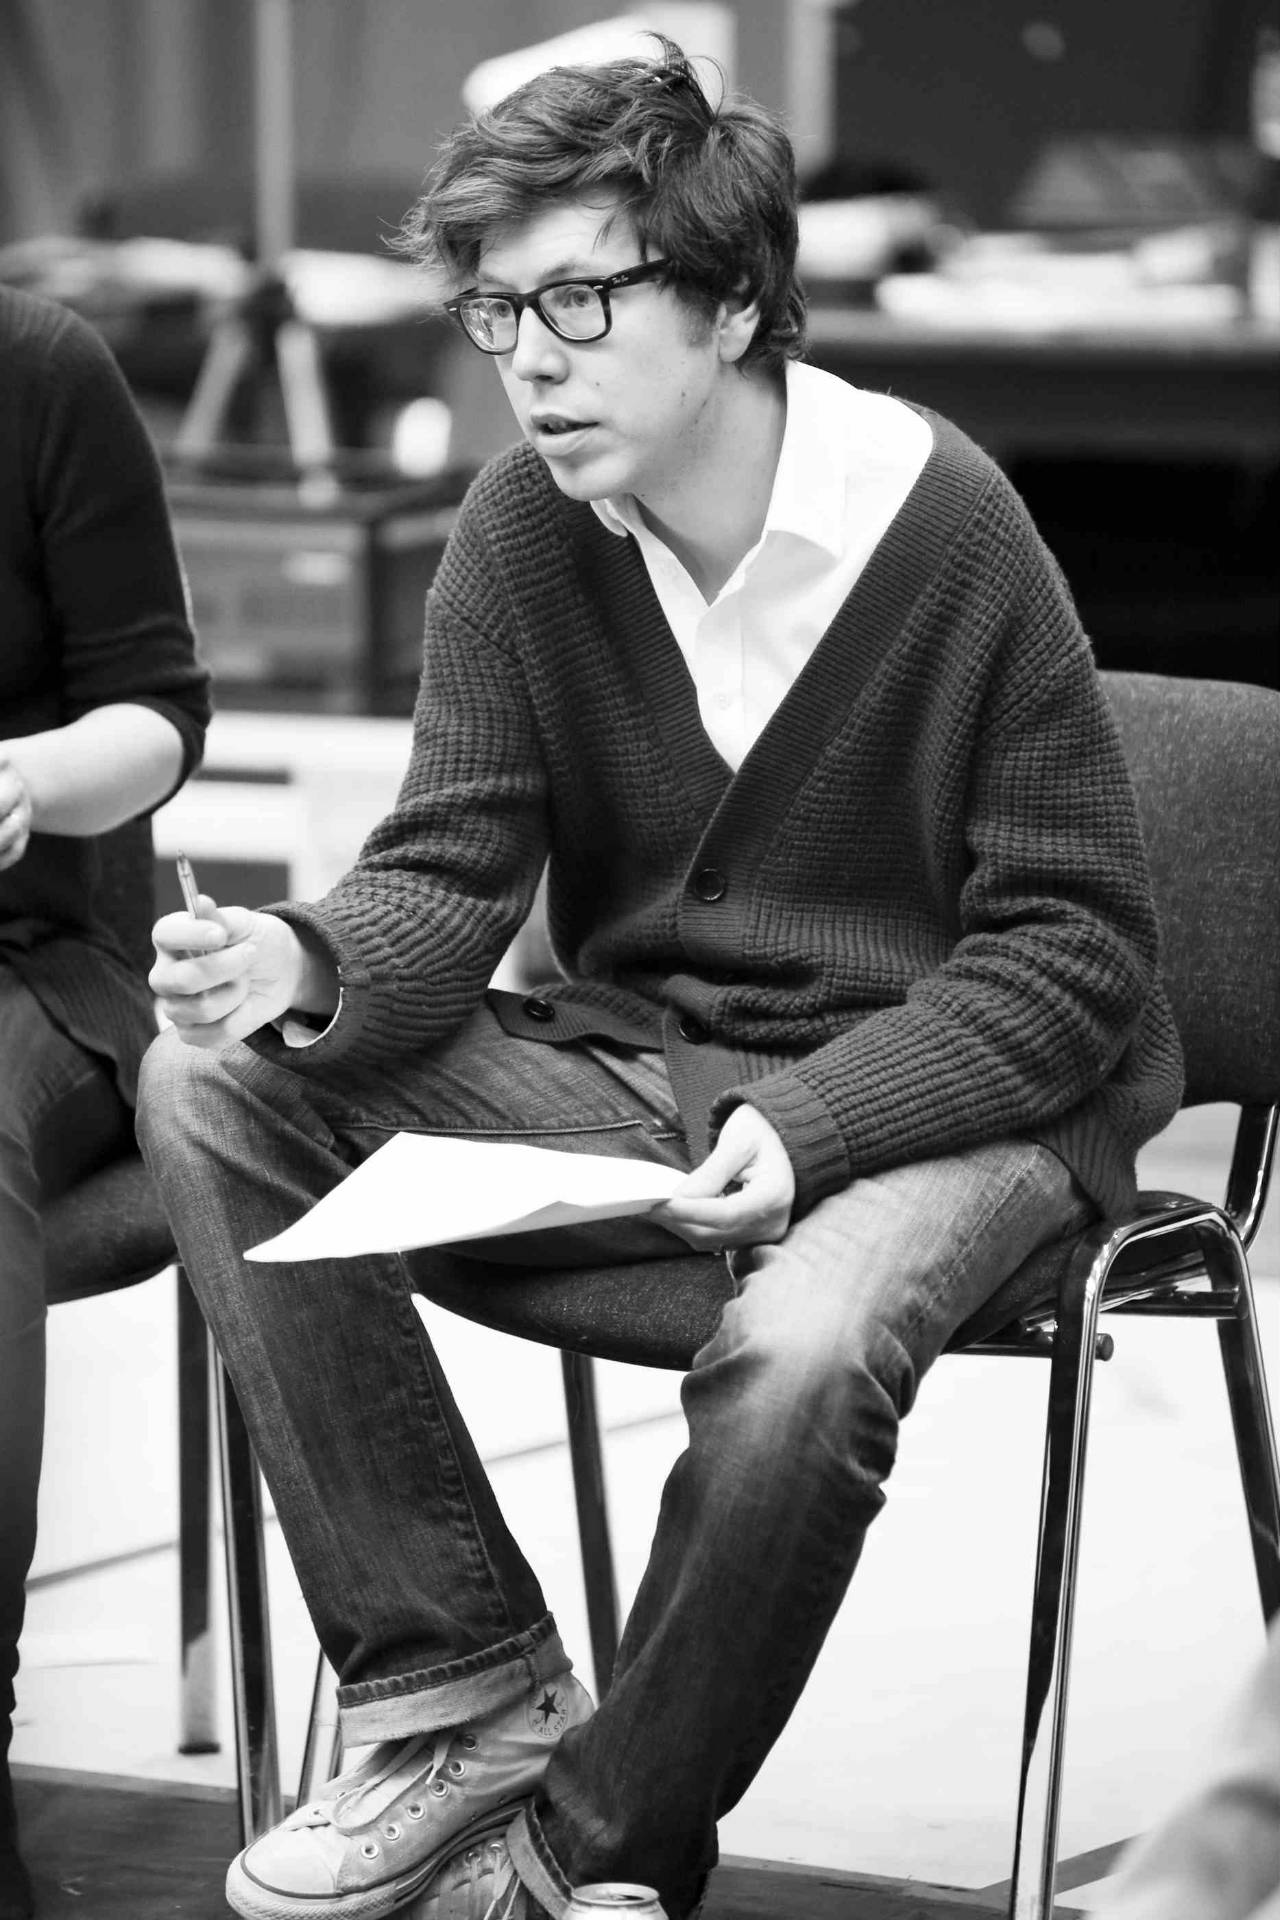 Ben Power in rehearsals for Greenland